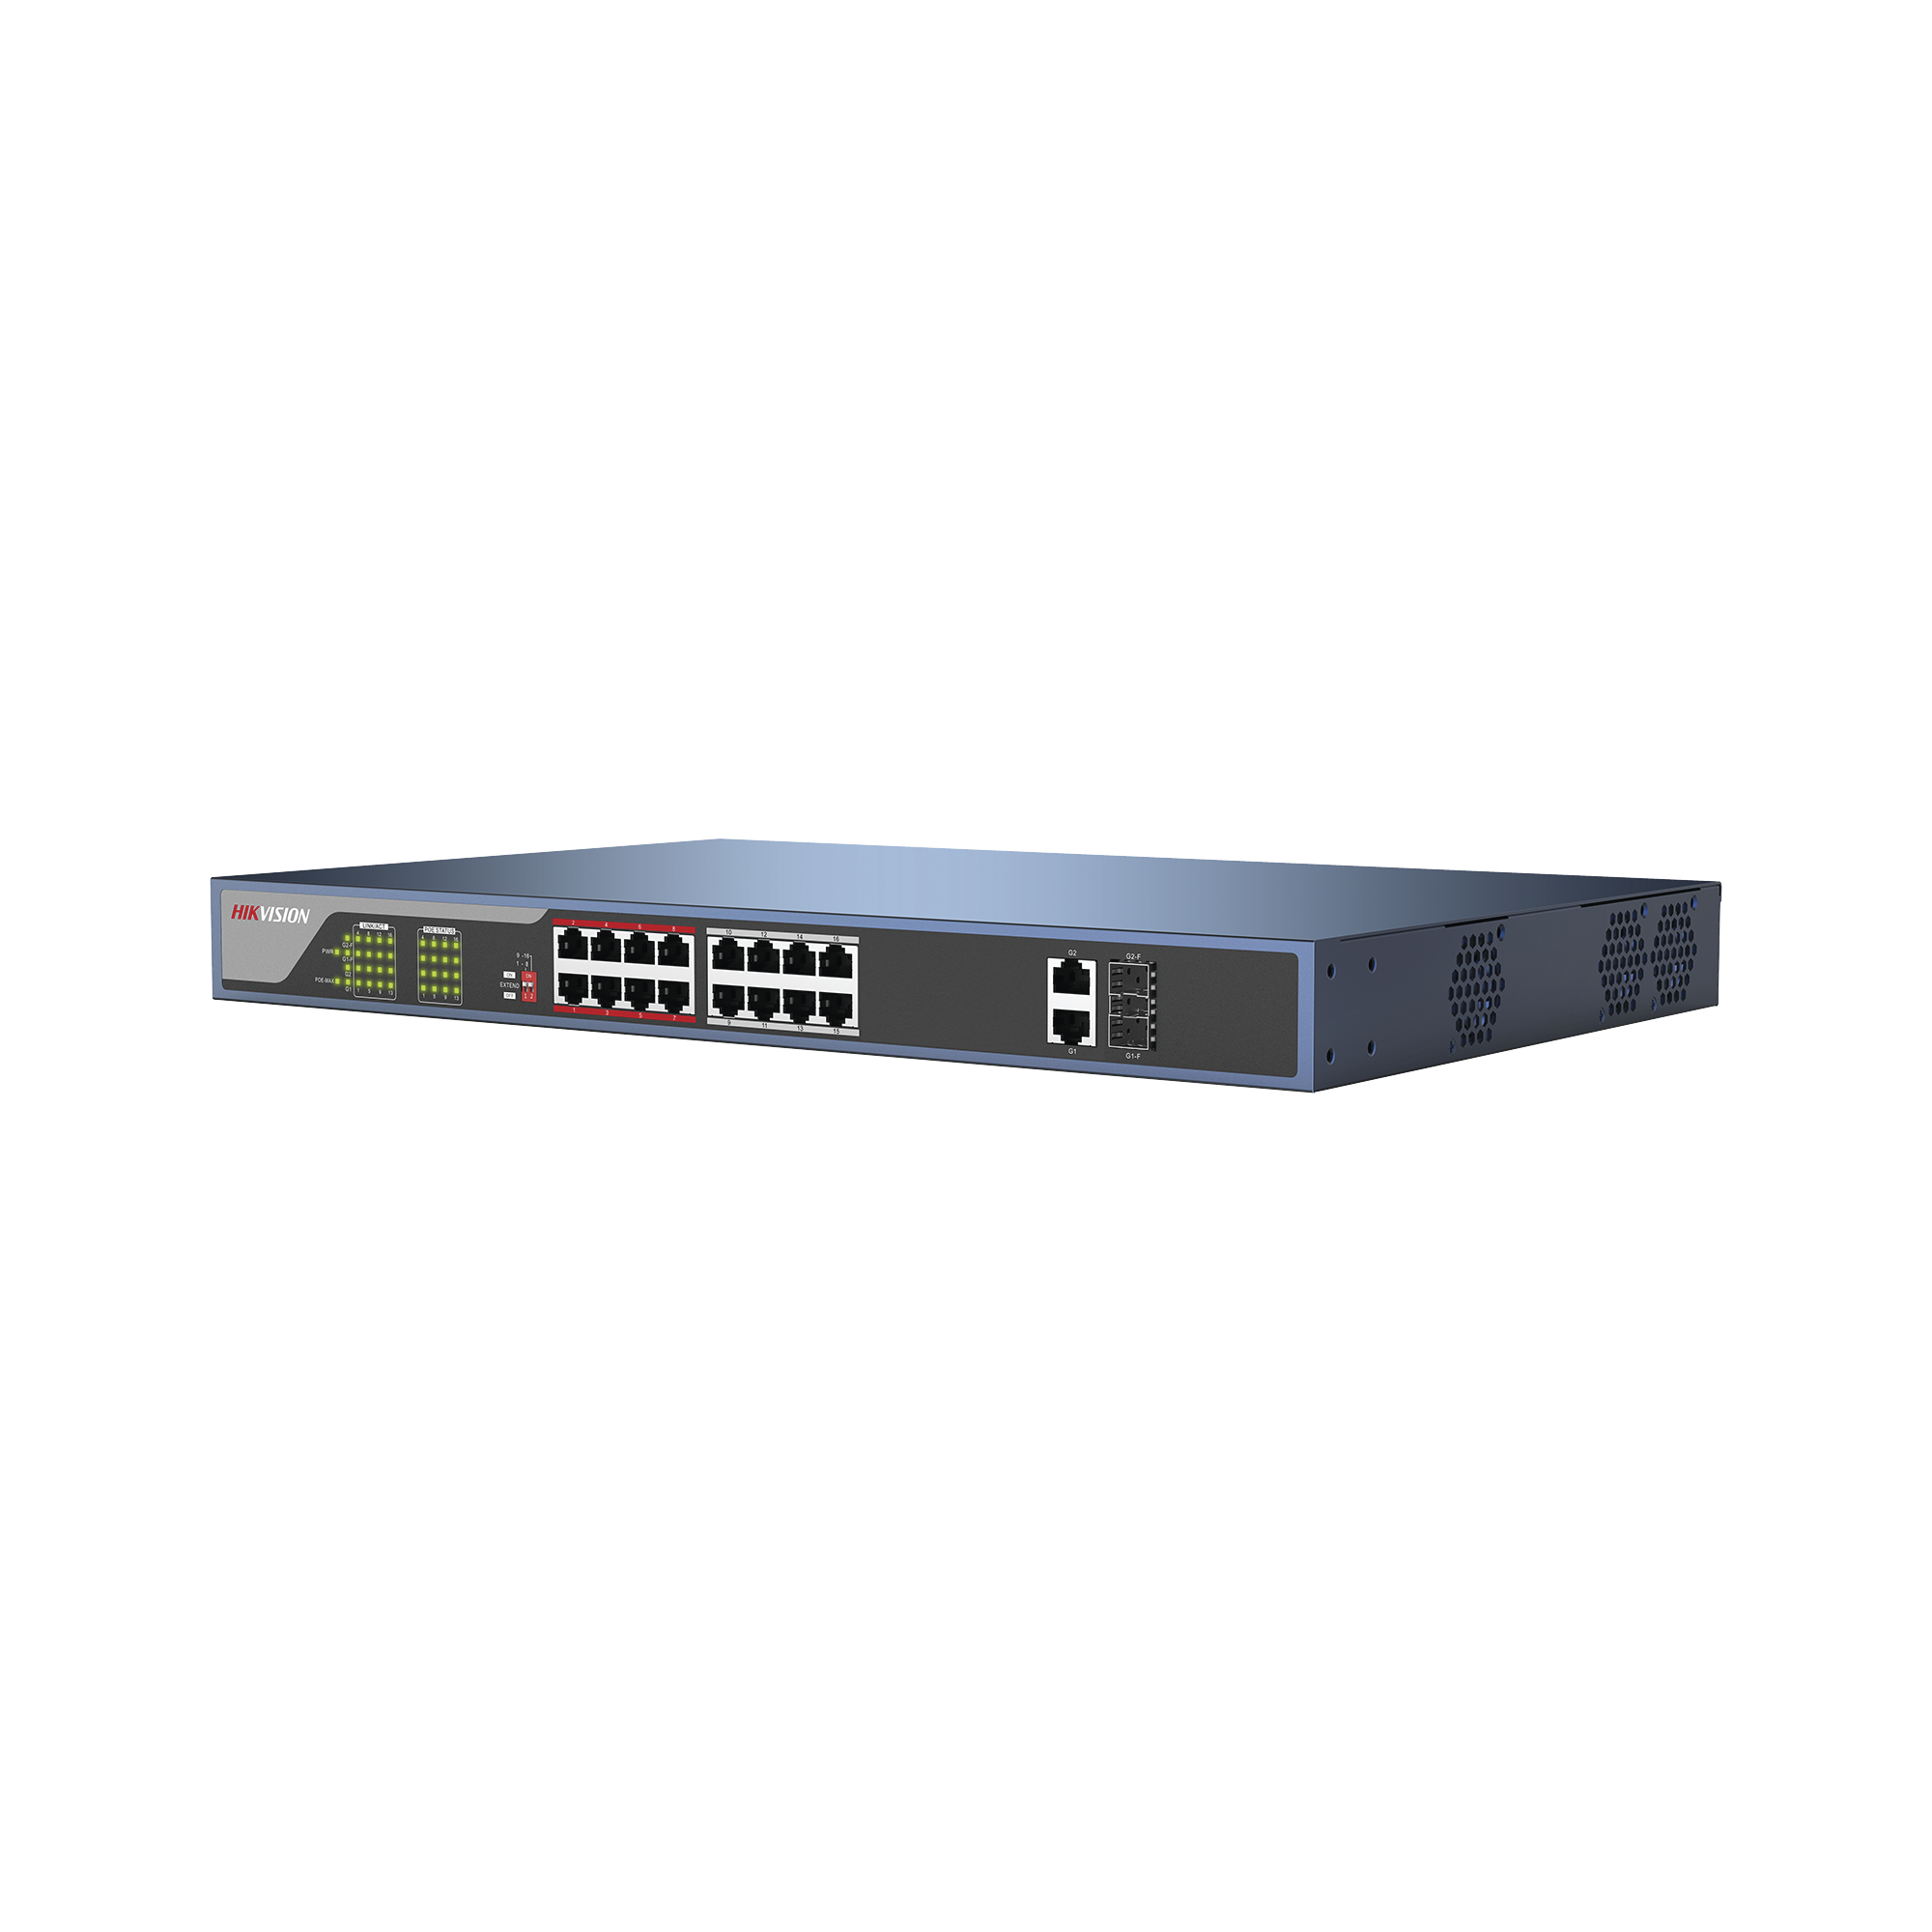 Switch PoE 250 Metros LARGA DISTANCIA / 16 puertos 802.3at (30W) 10/100 Mbps + 2 puertos Gigabit + 2 puertos SFP